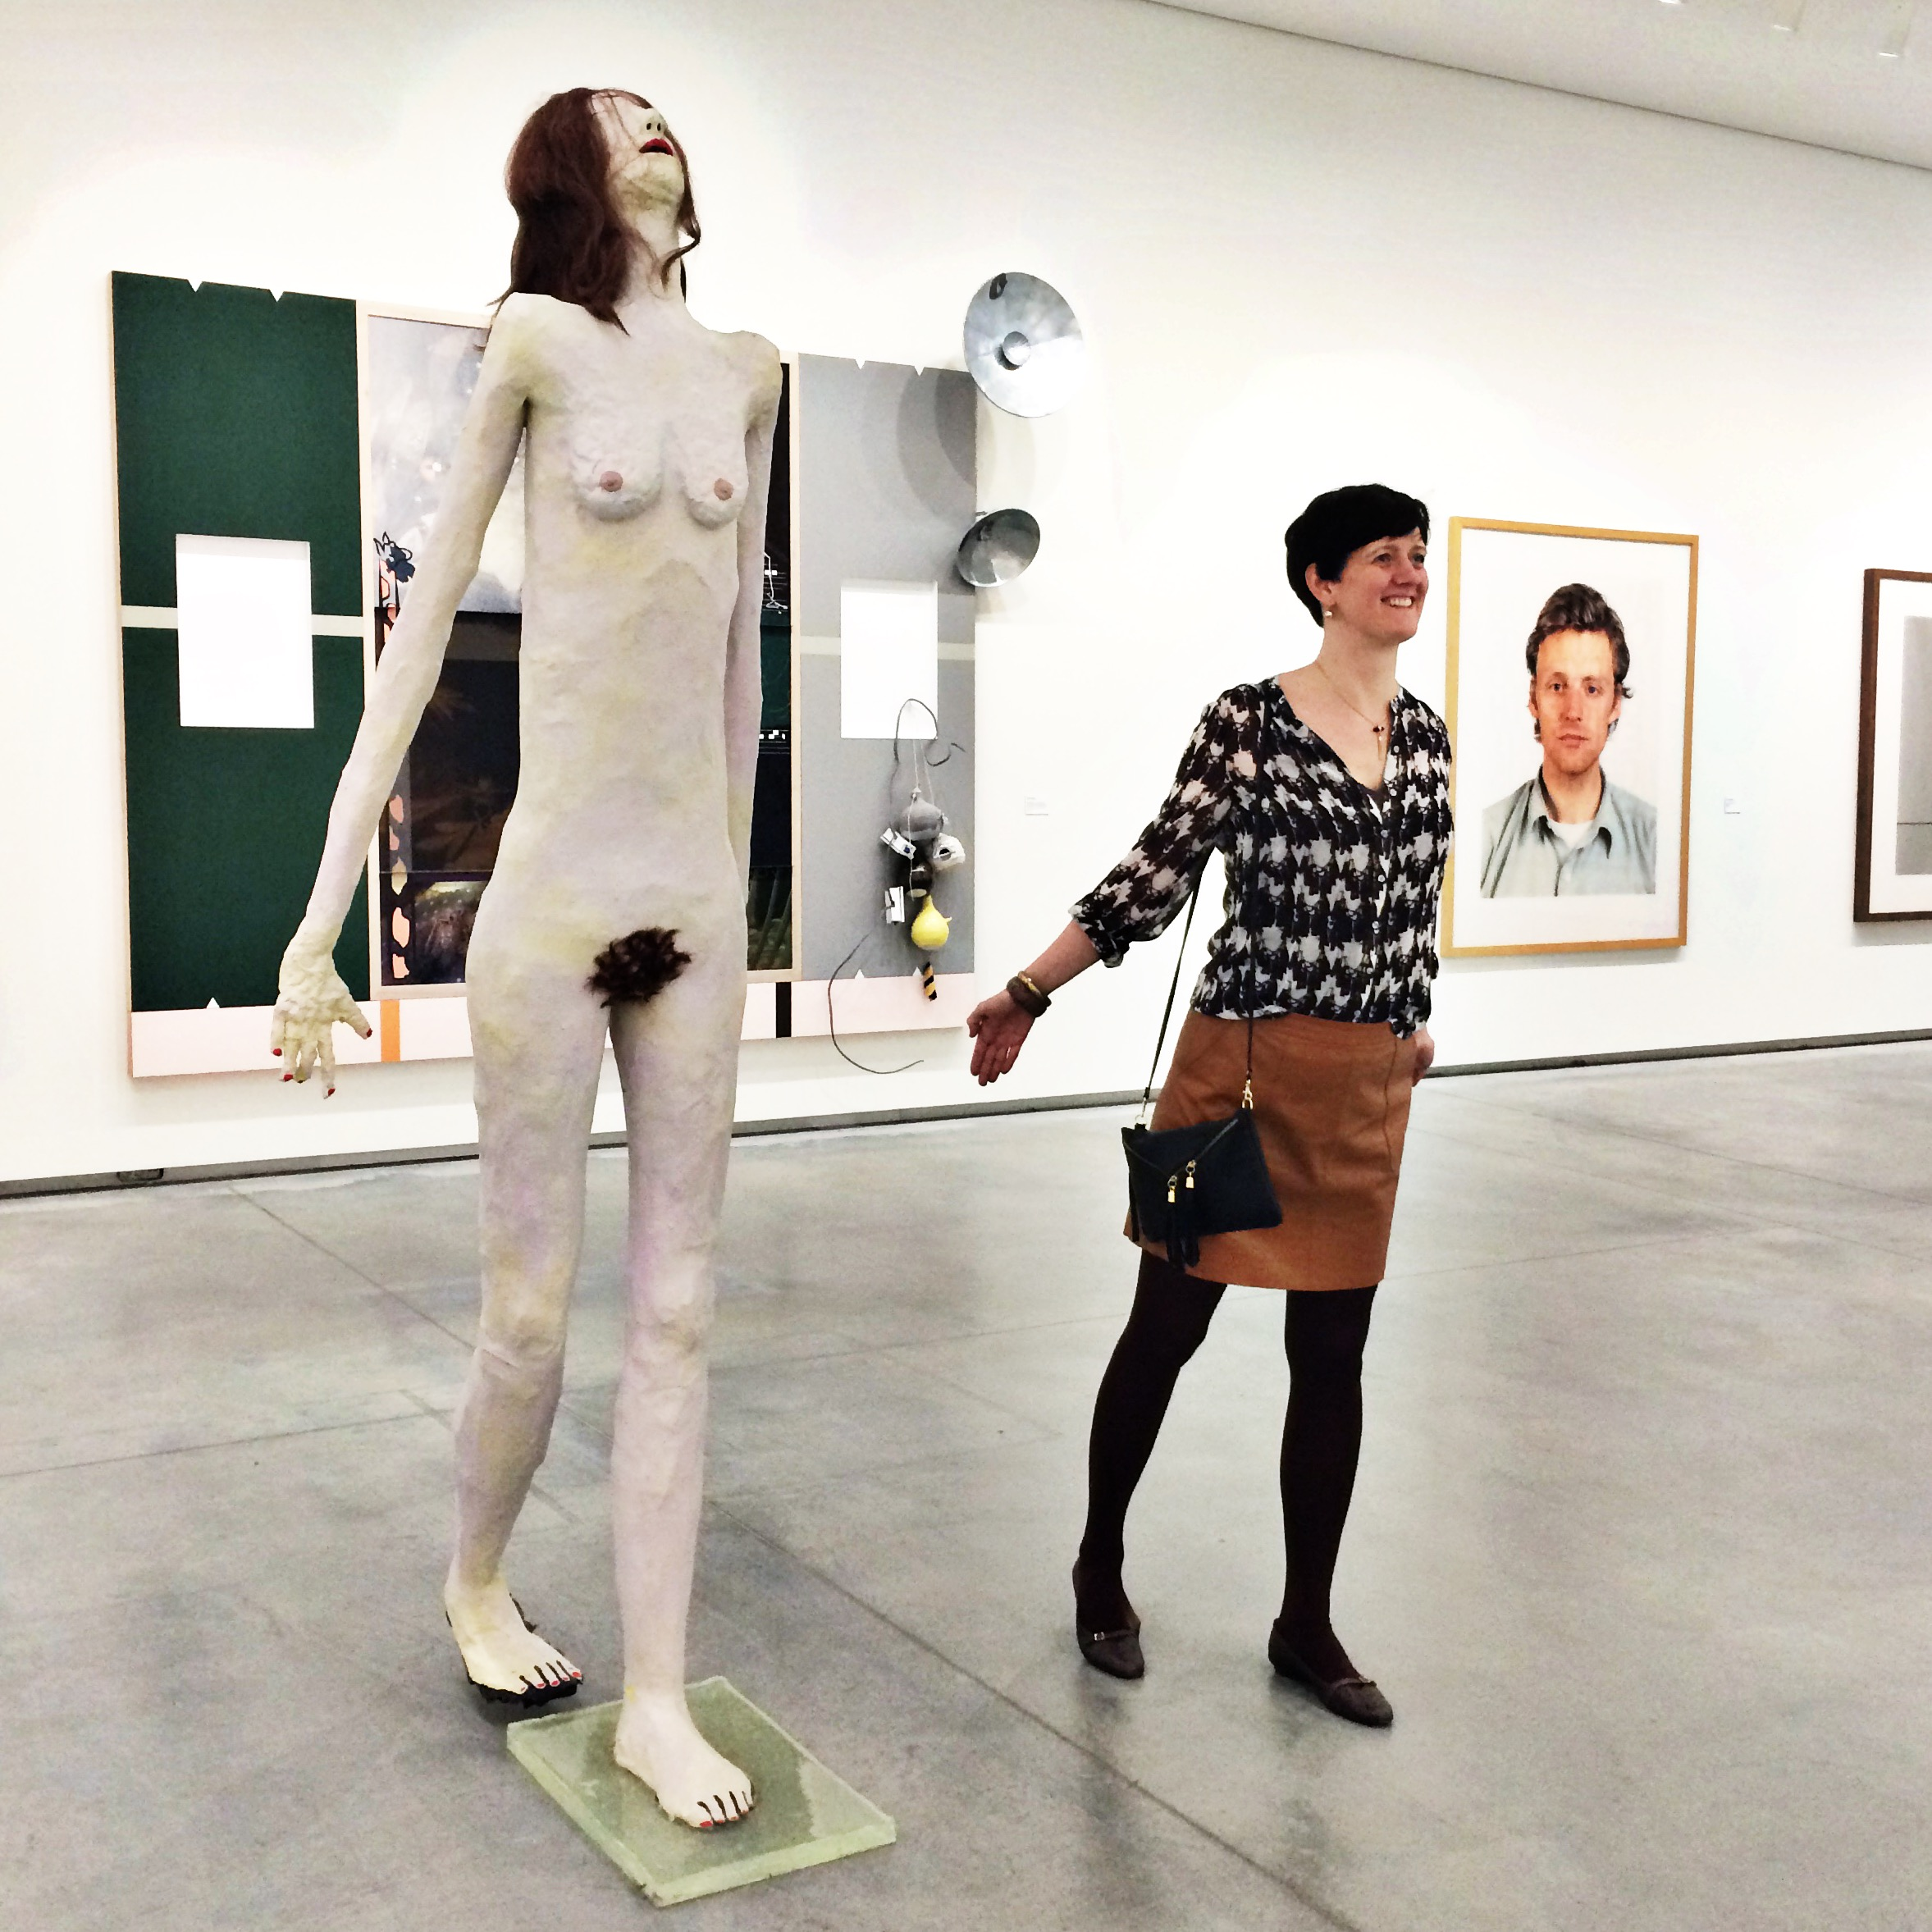 Tall girl's fashion // Friends, food & museums